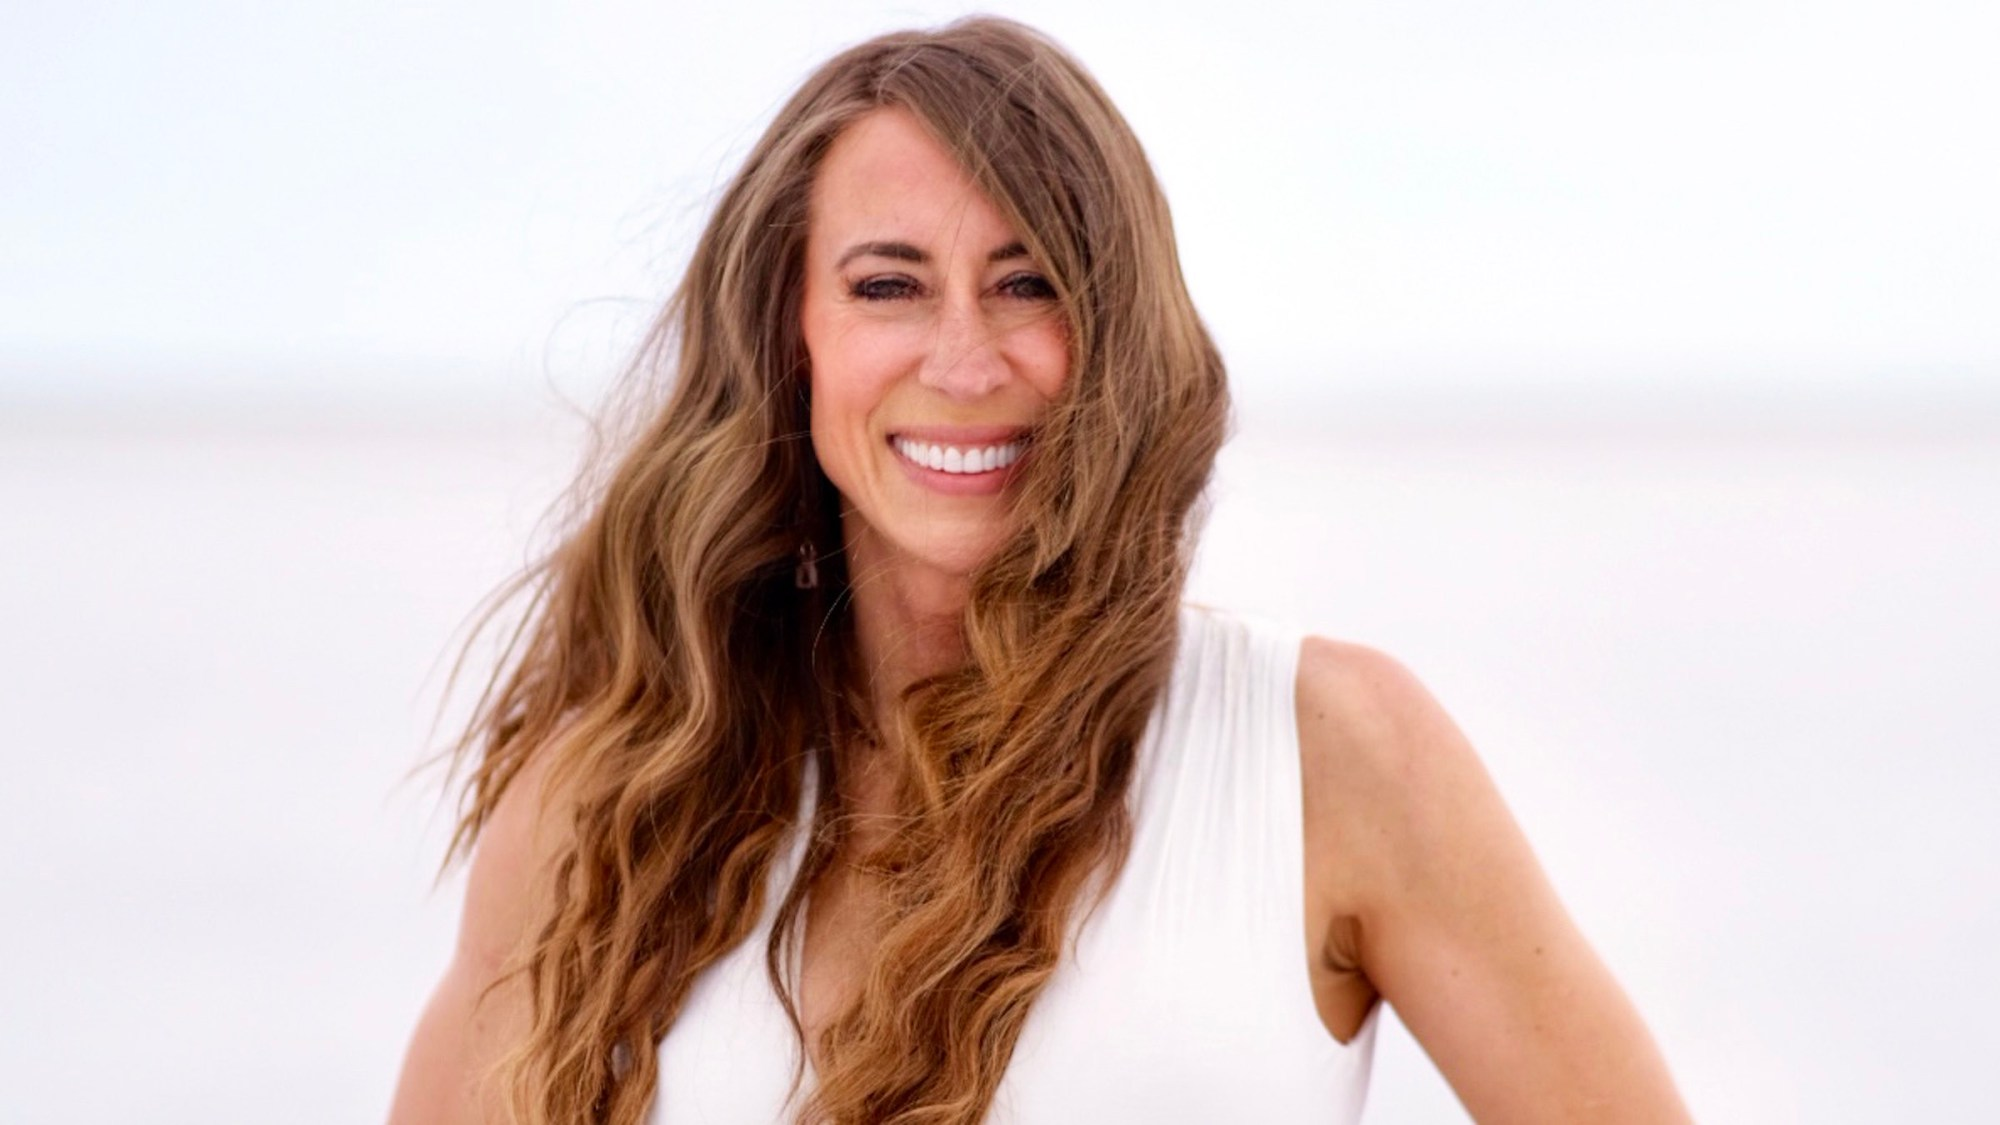 Whole30 co-founder and CEO Melissa Urban